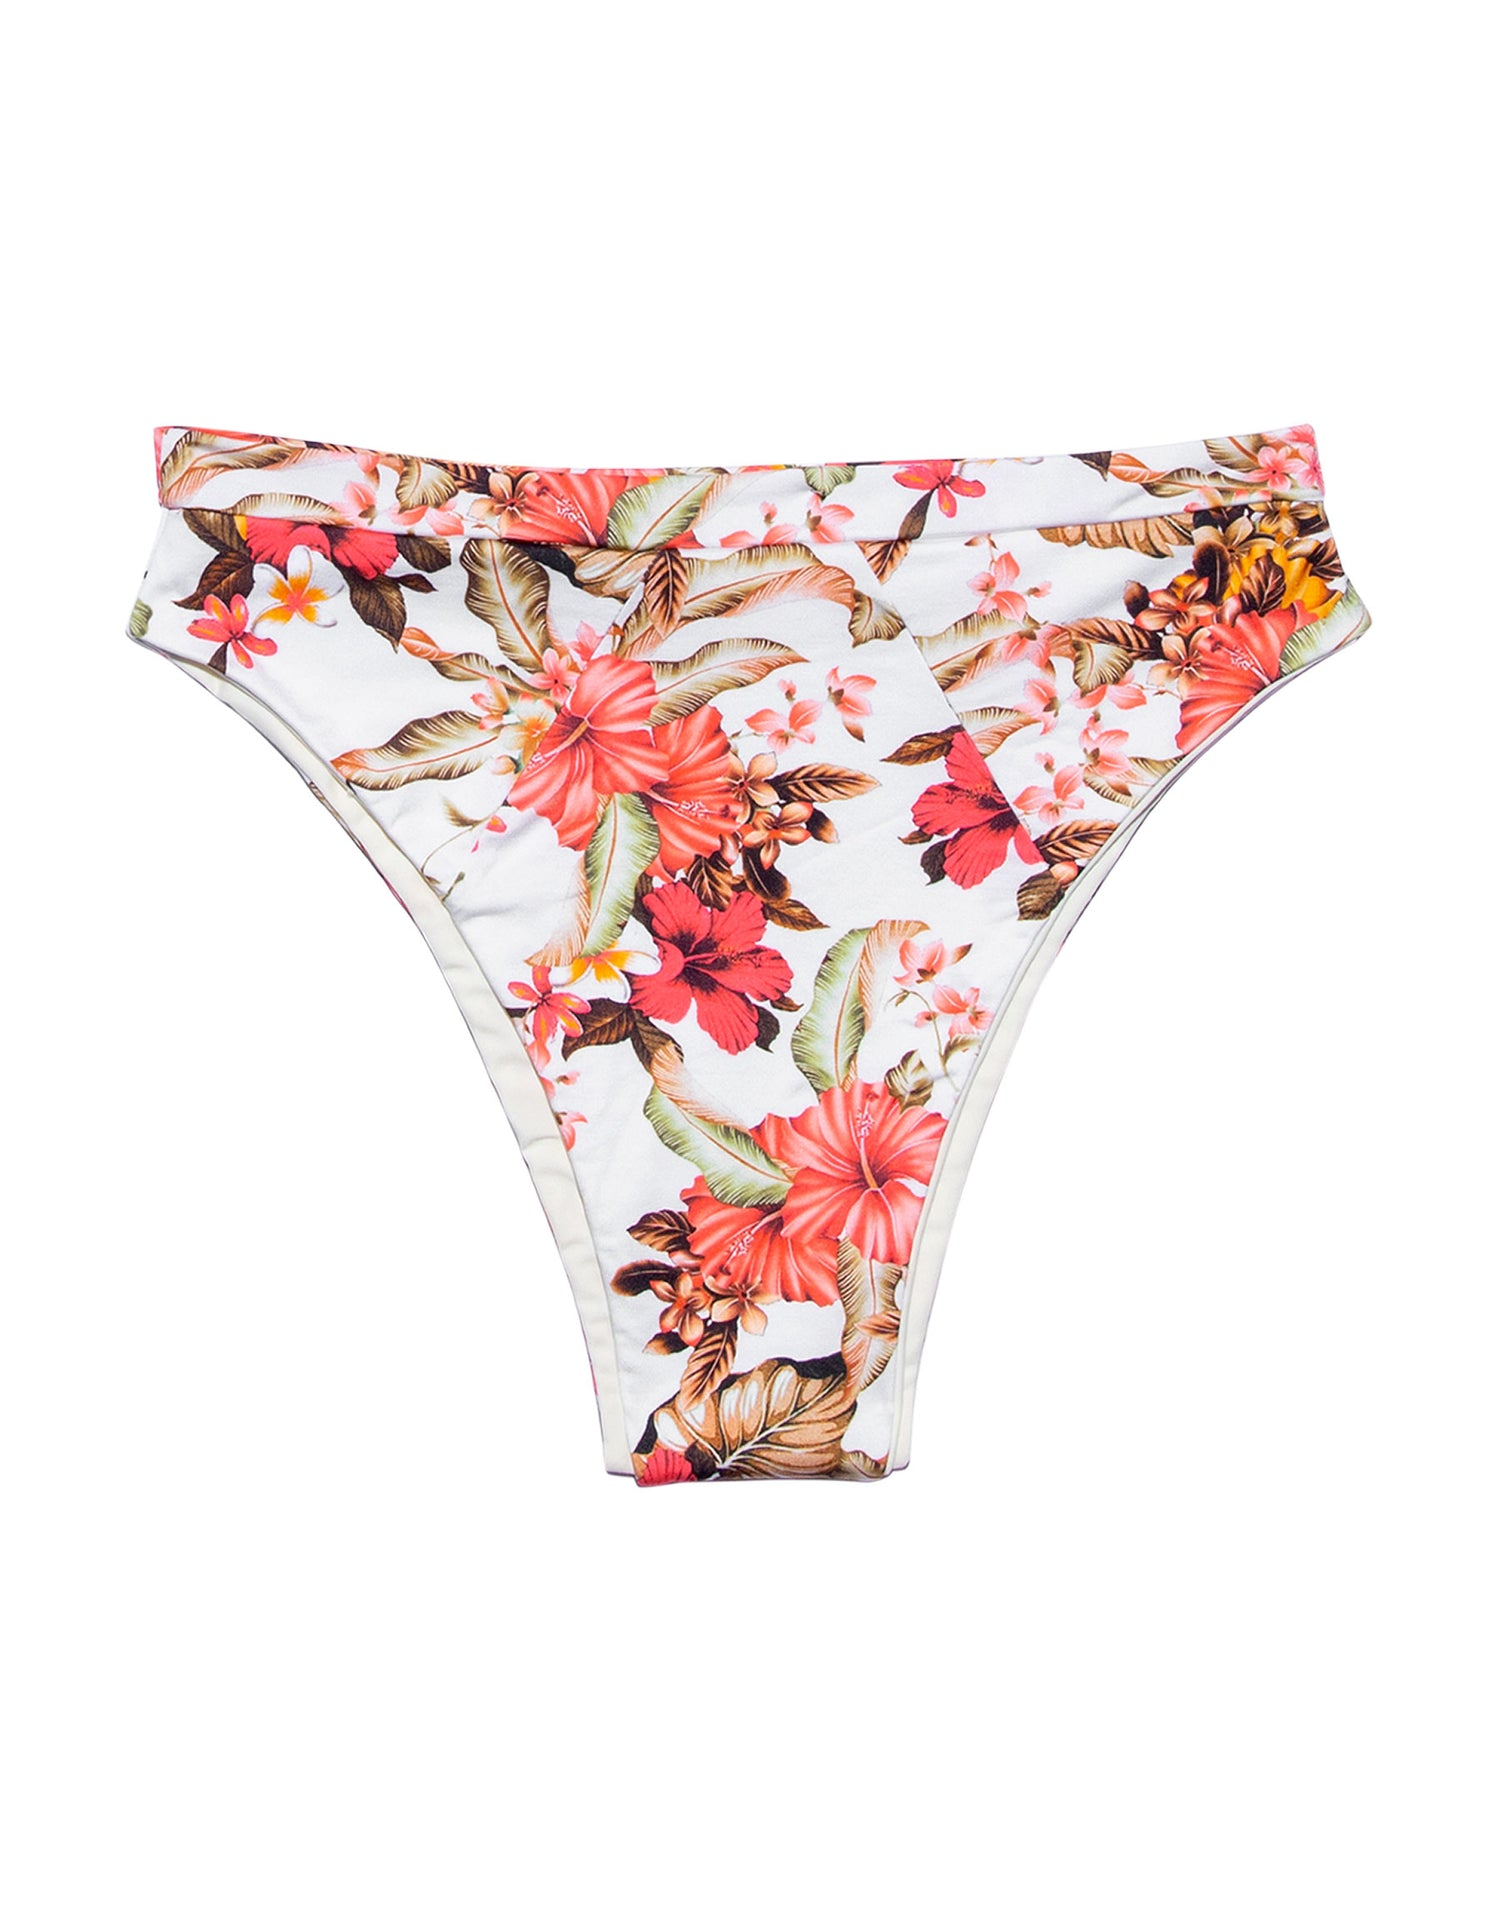 Floral Print High Waisted Bikini - product view